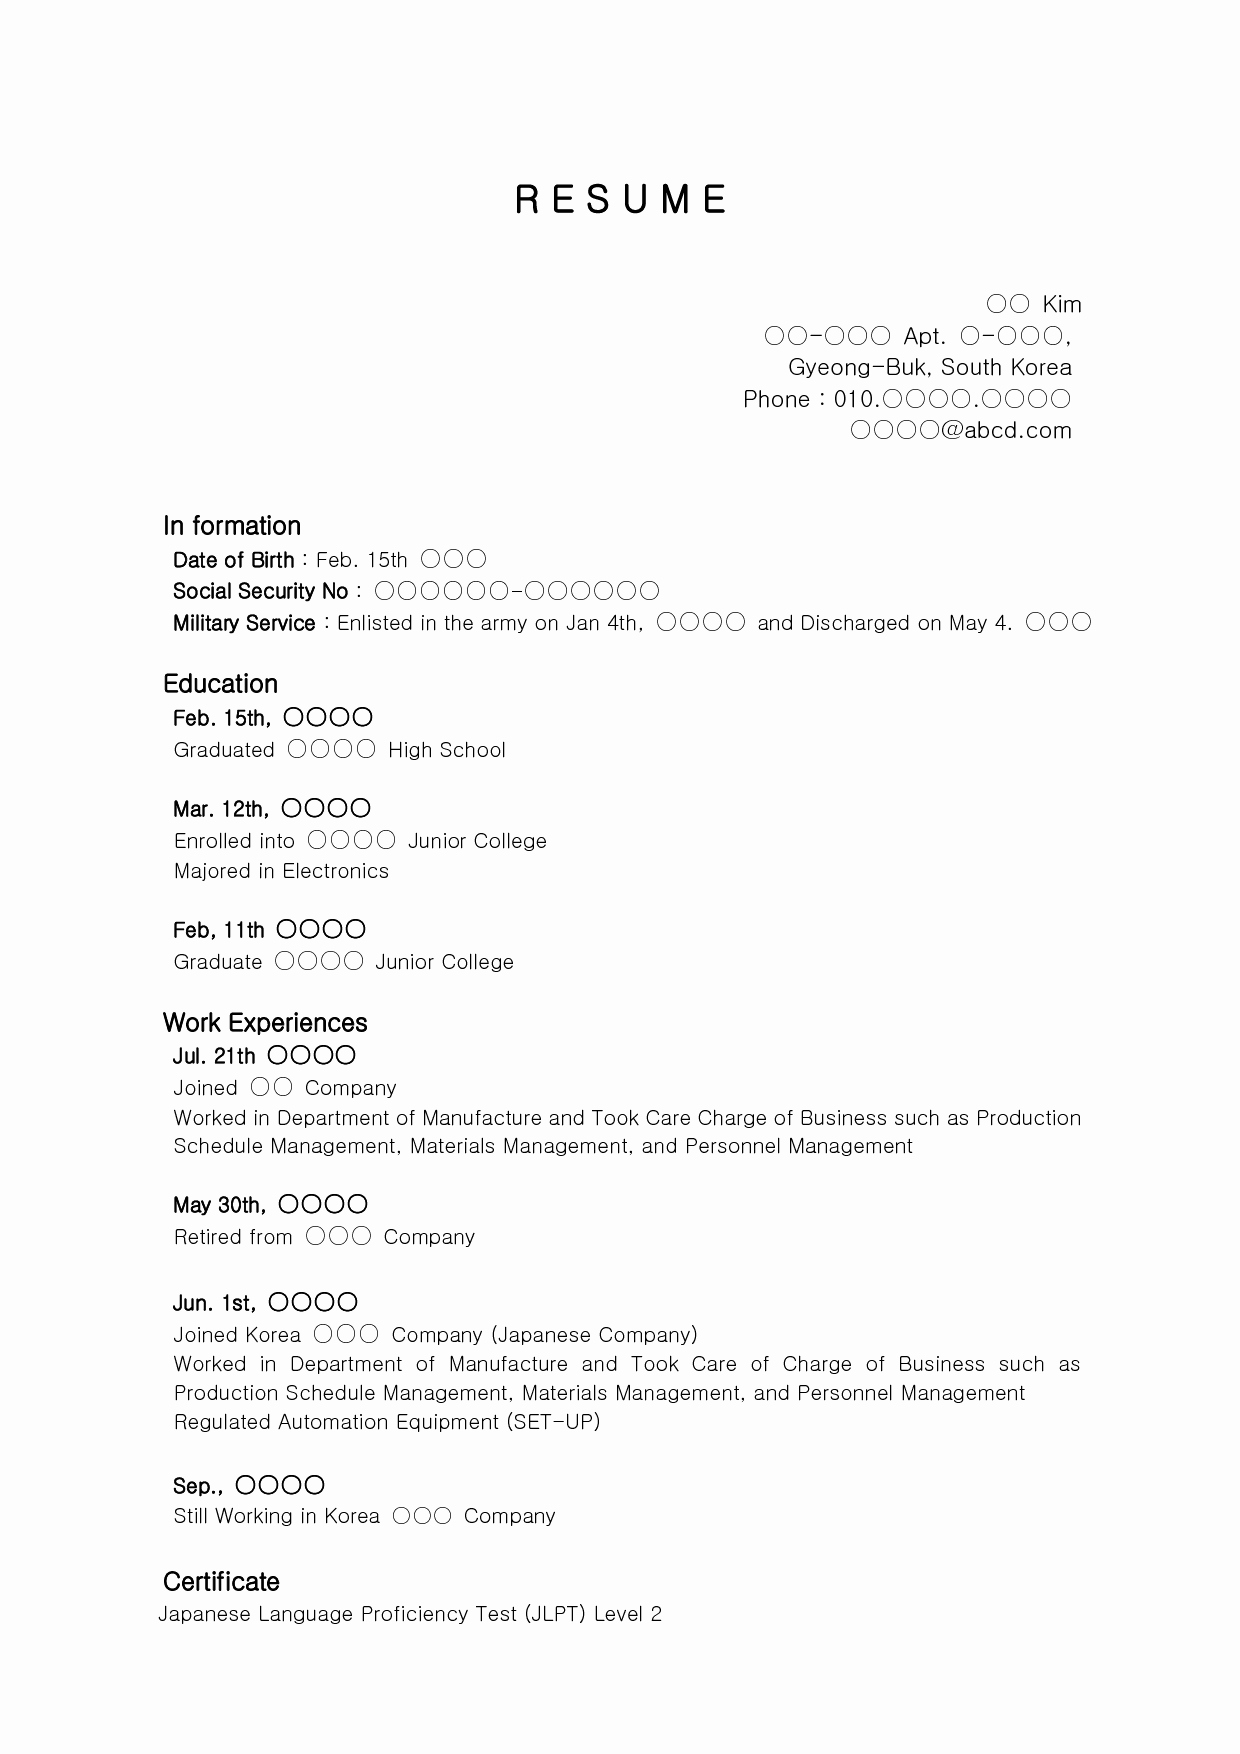 Sample Resume for High School Graduate with No Work